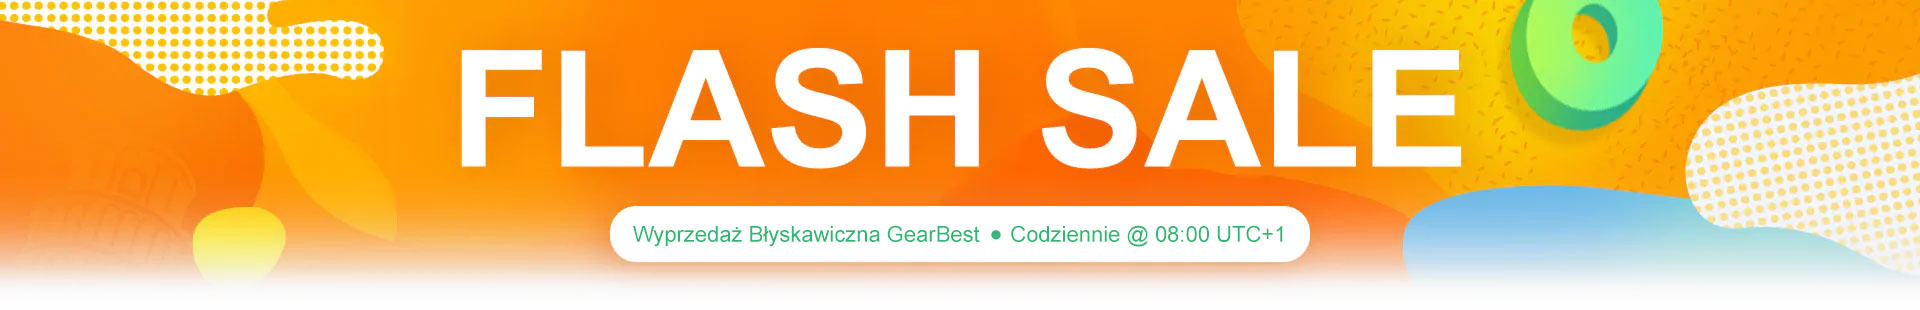 Flash Sale - GearBest